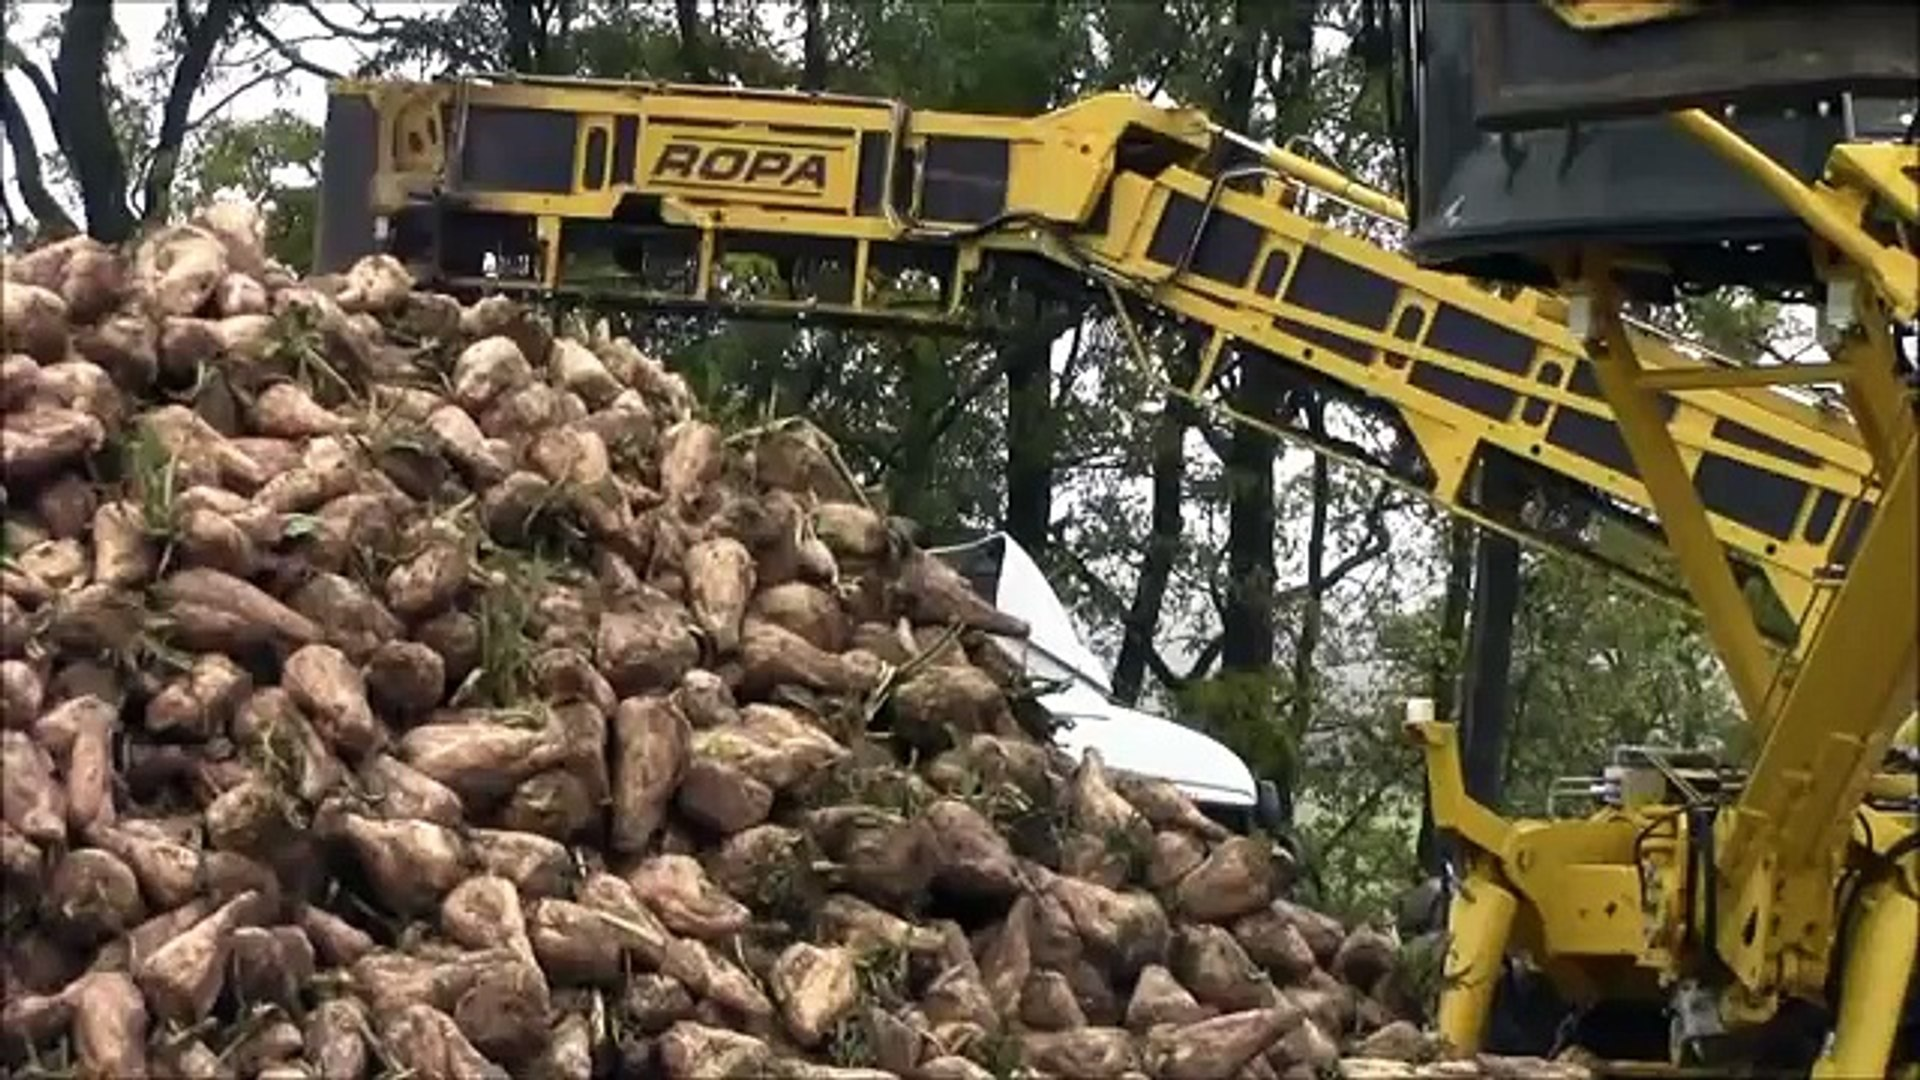 Ropa mouse loading sugar beet in 2012.wmv